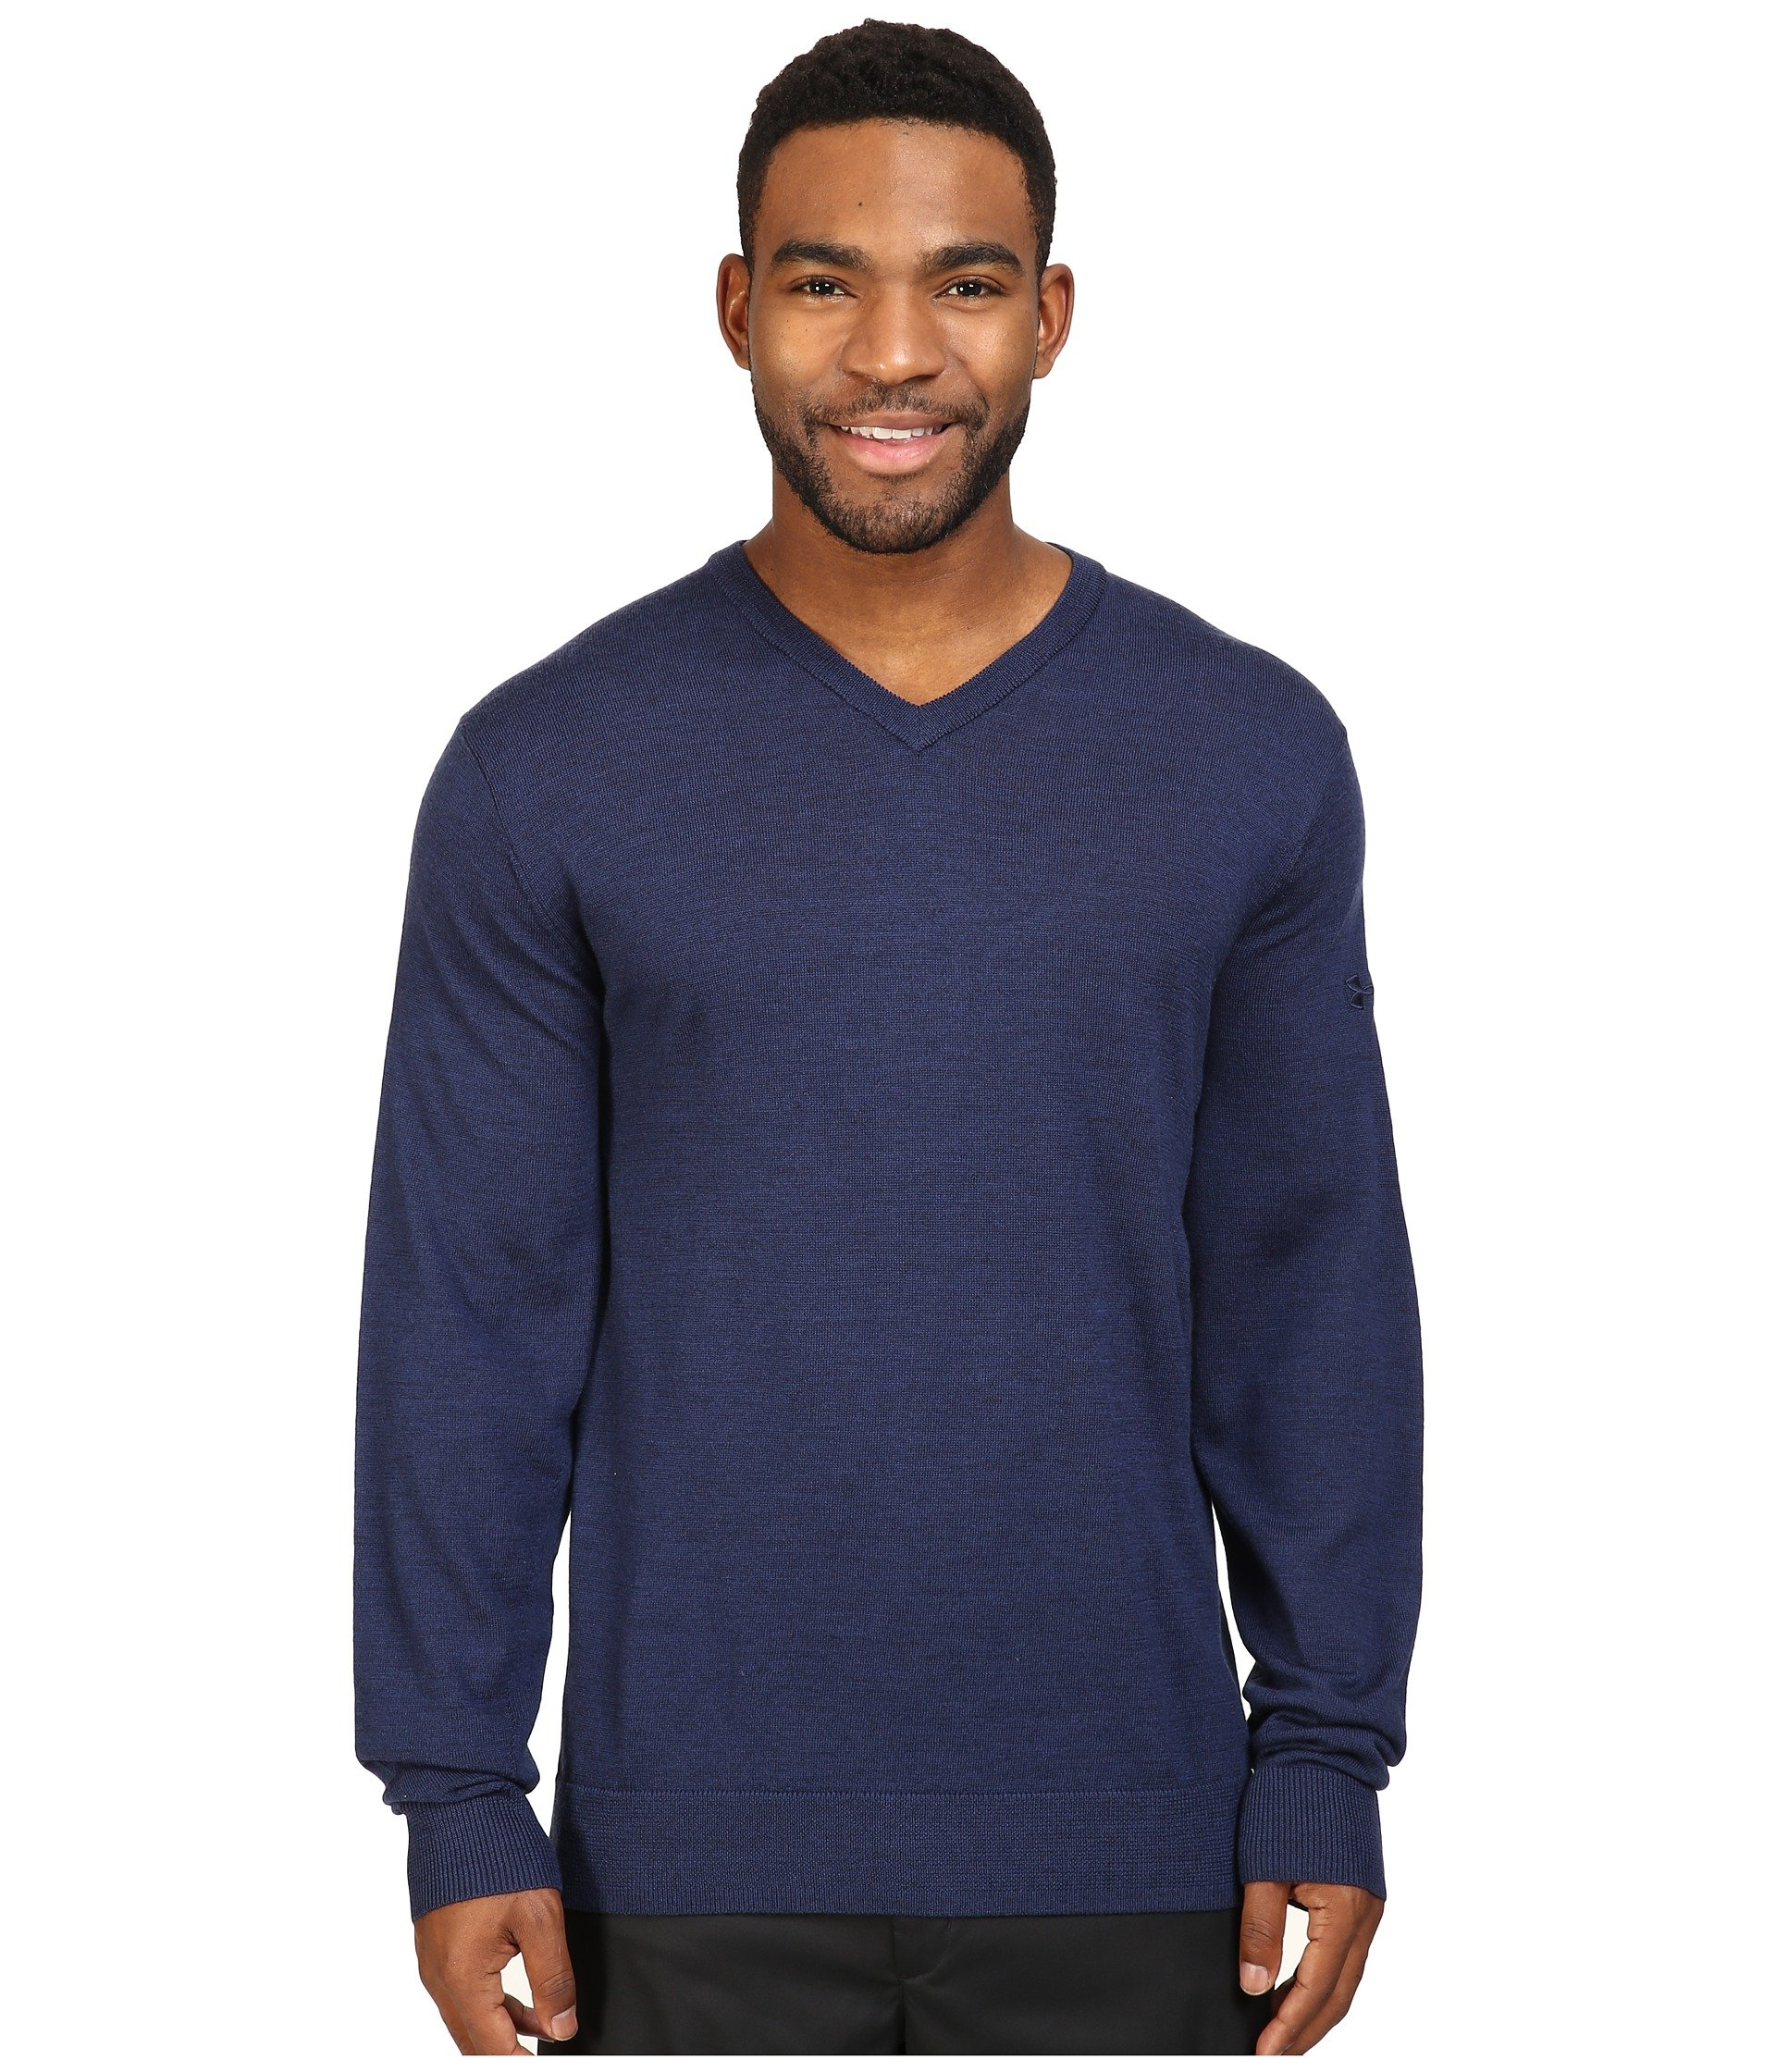 Sueter para Hombre Under Armour Golf Tips V-Neck Sweater  + Under Armour en VeoyCompro.net